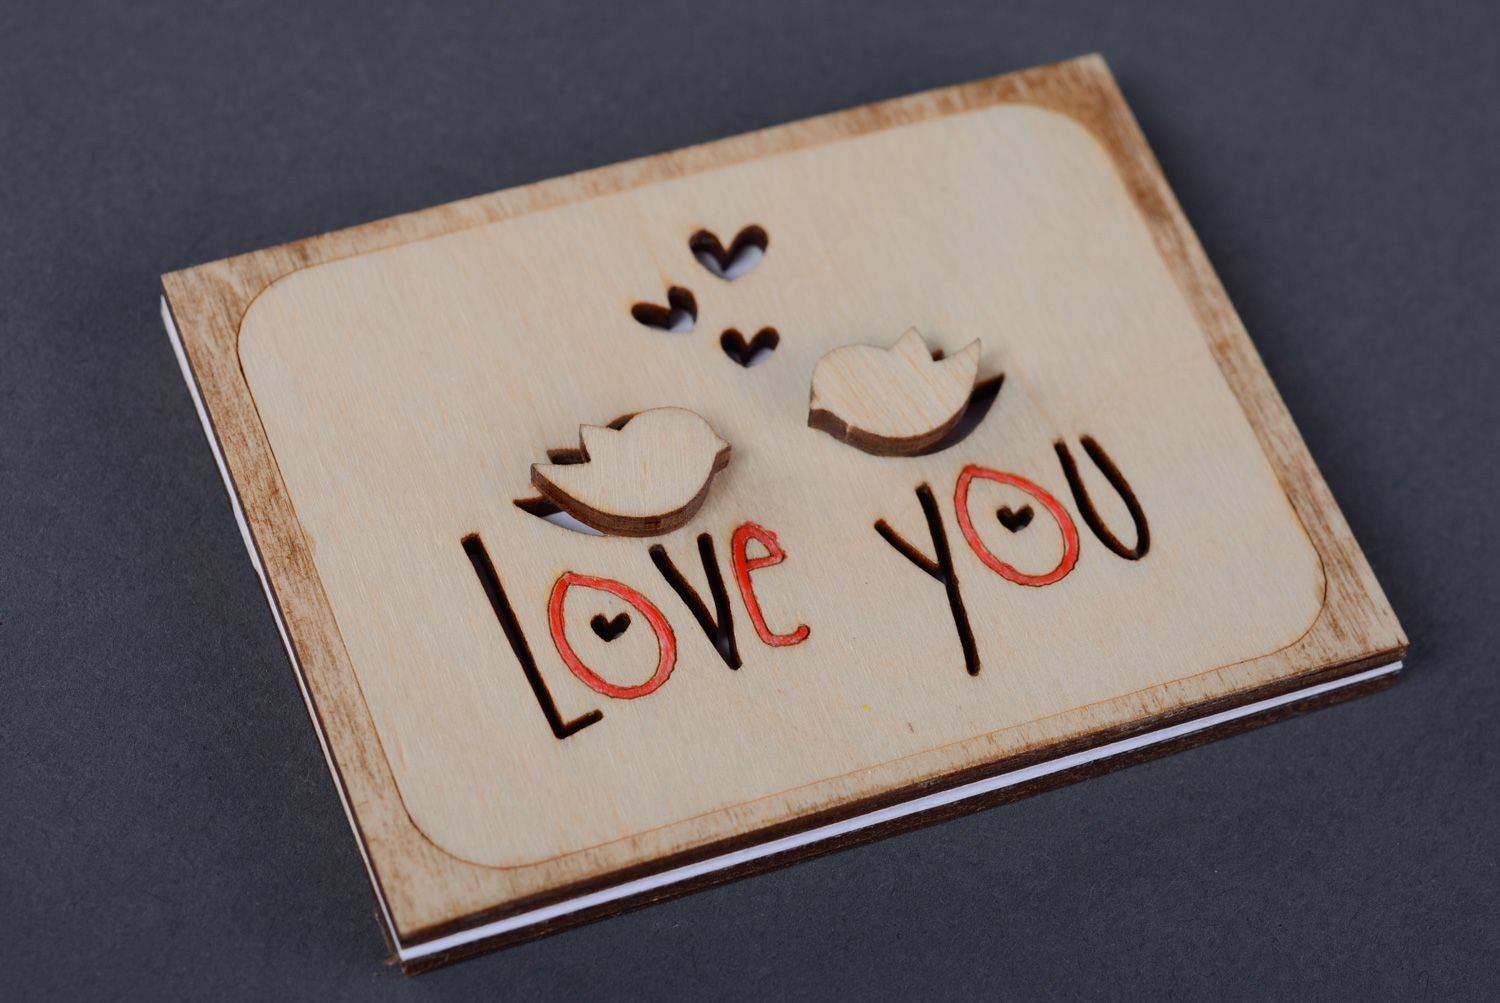 Wooden St. Valentine's day greeting card photo 3